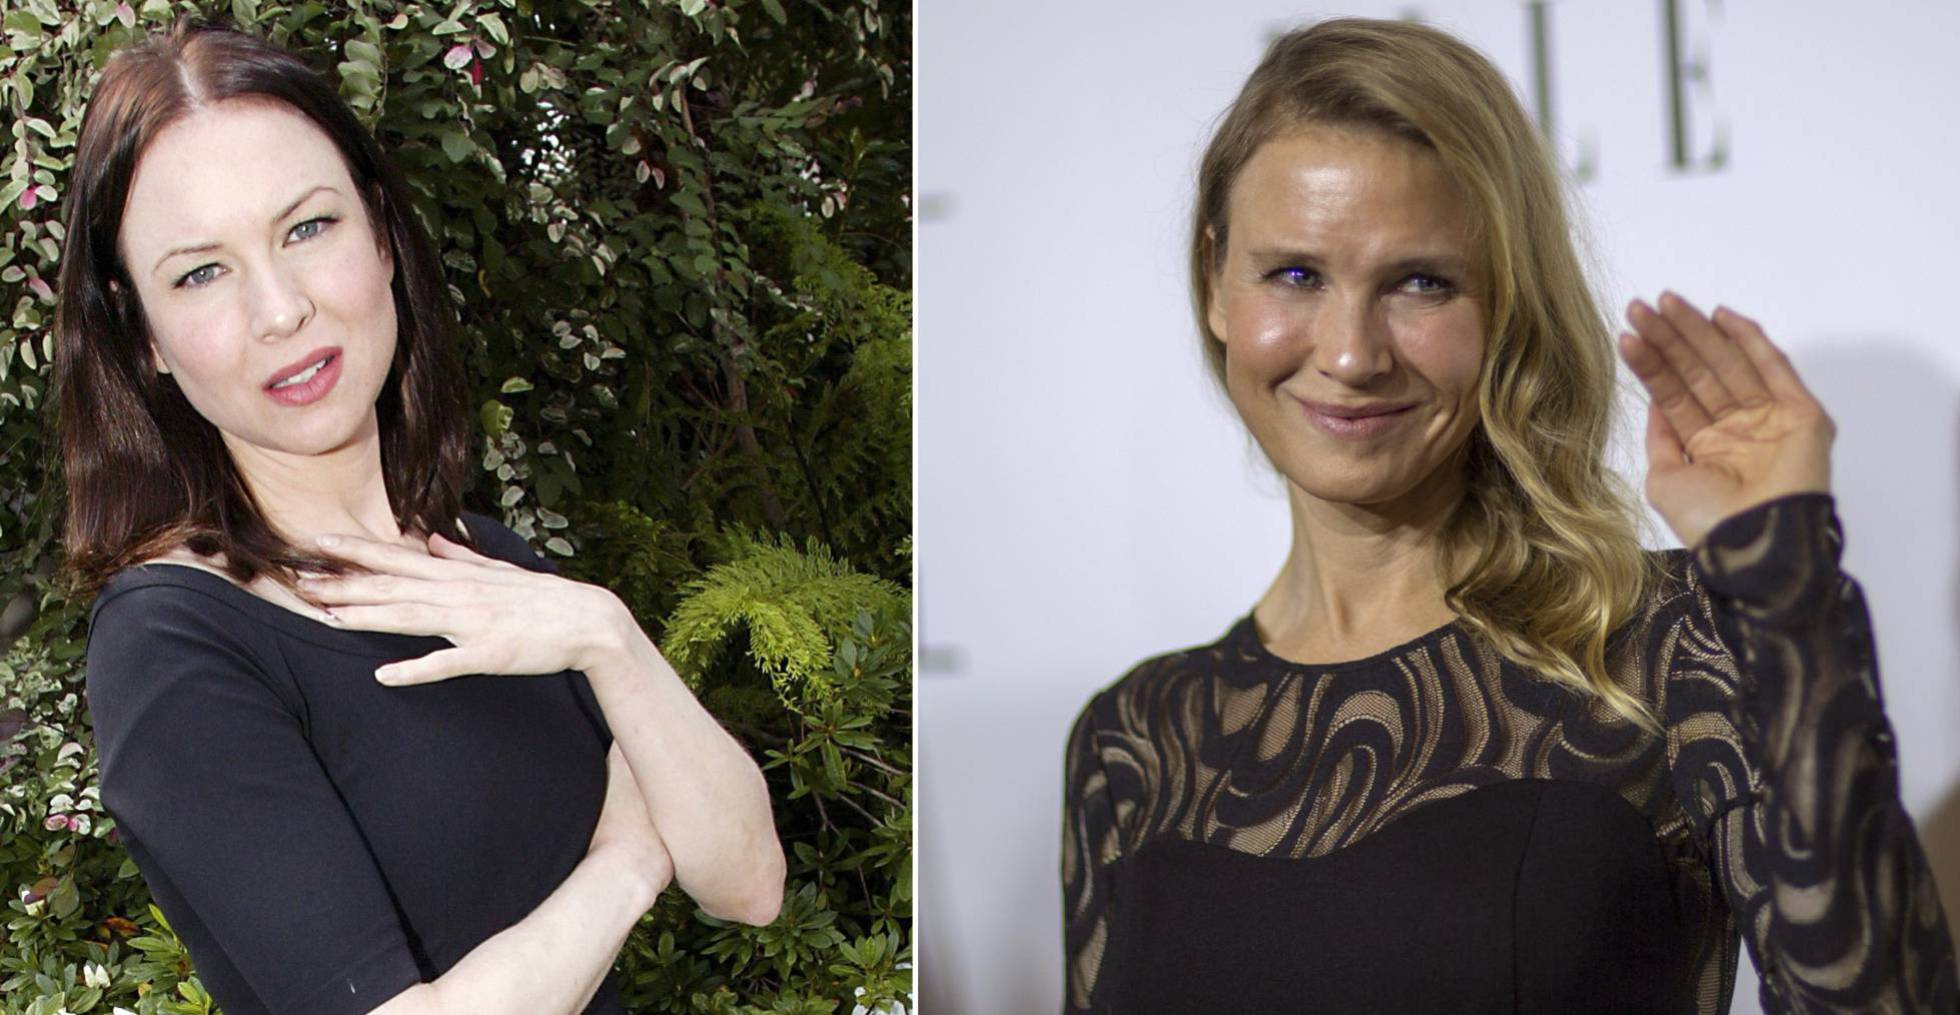 The different faces of Renee Zellweger at the age of 50